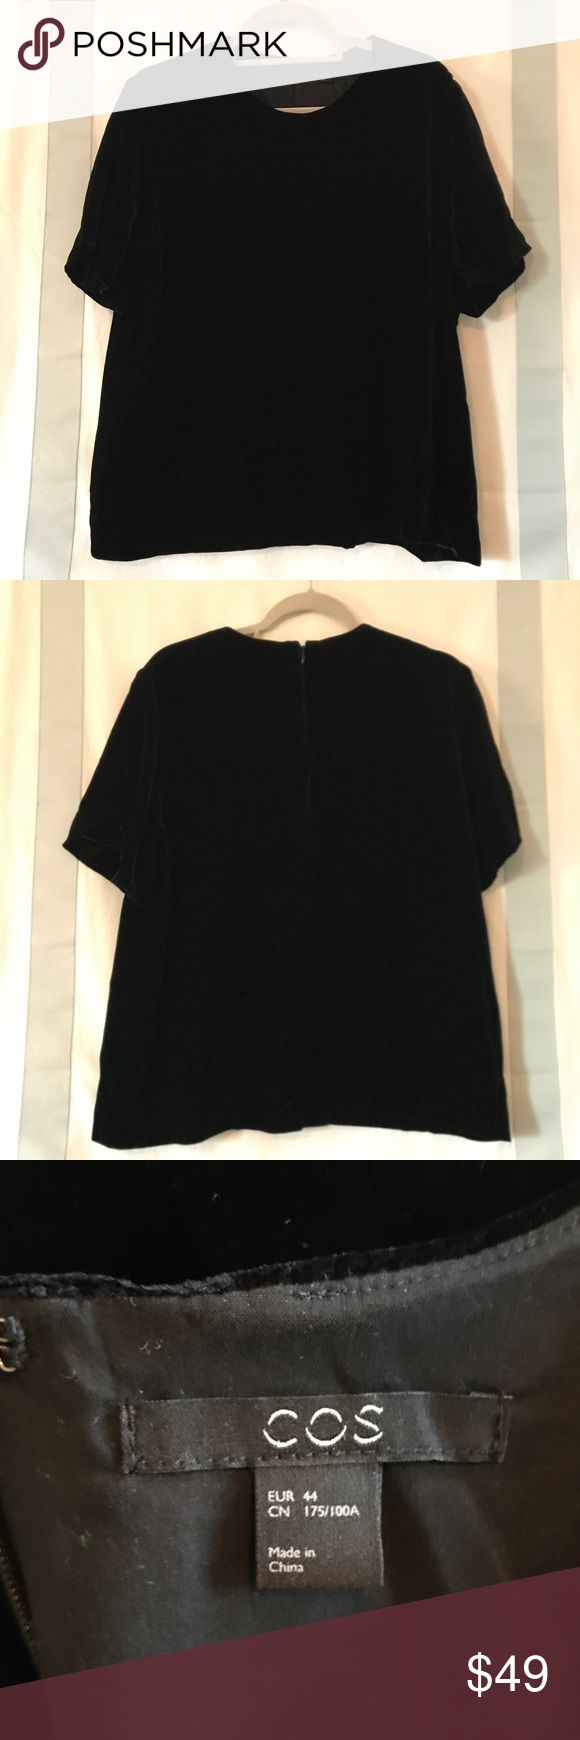 COS Black Velvet Top. NWOT size 44 / US 14. COS Black Short Sleeve Velvet Top. NWOT & never worn was a gift and just doesn't fit me properly. size 44 / US 14. COS Tops